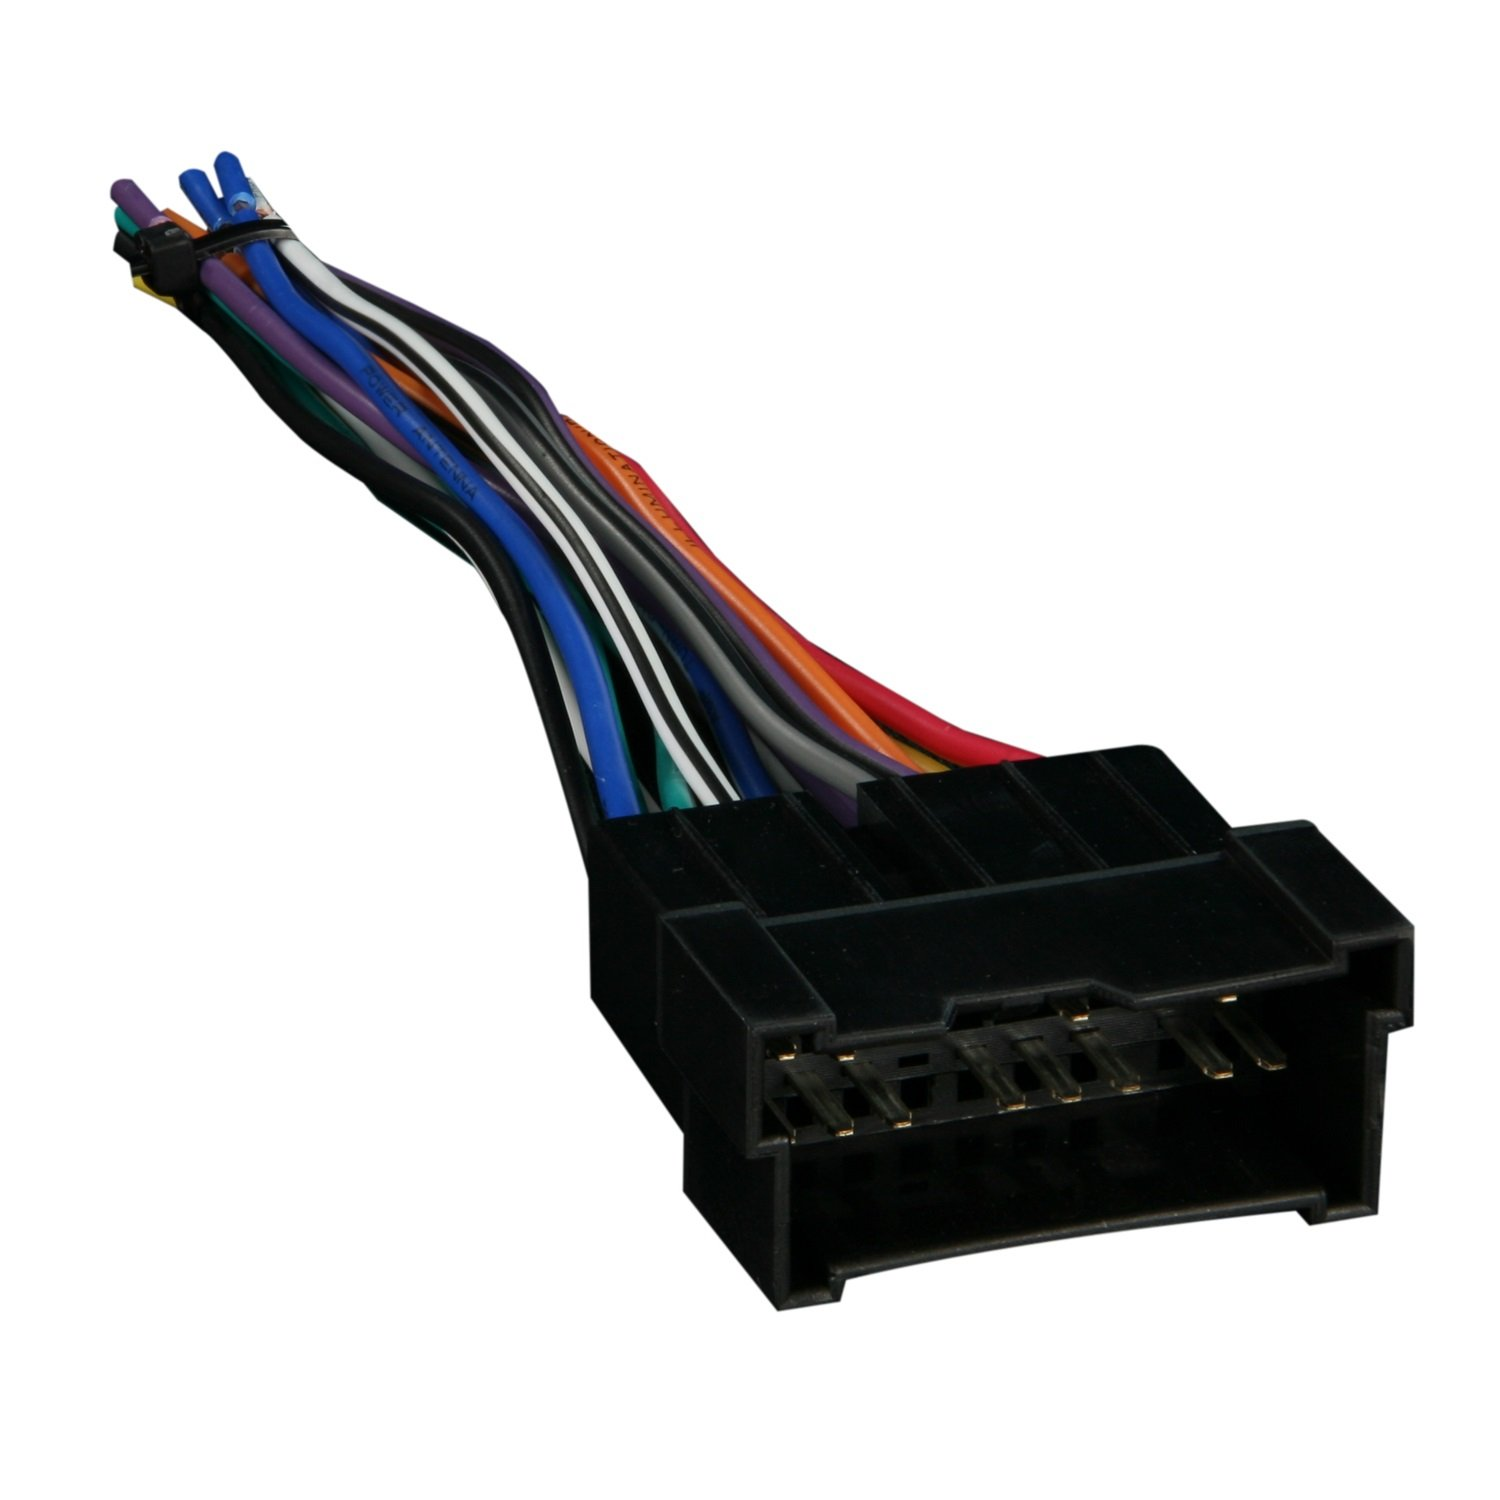 617yeBmOquL._SL1500_ amazon com metra 70 7301 radio wiring harness for hyundai kia 99 how to insert wire into harness at bayanpartner.co